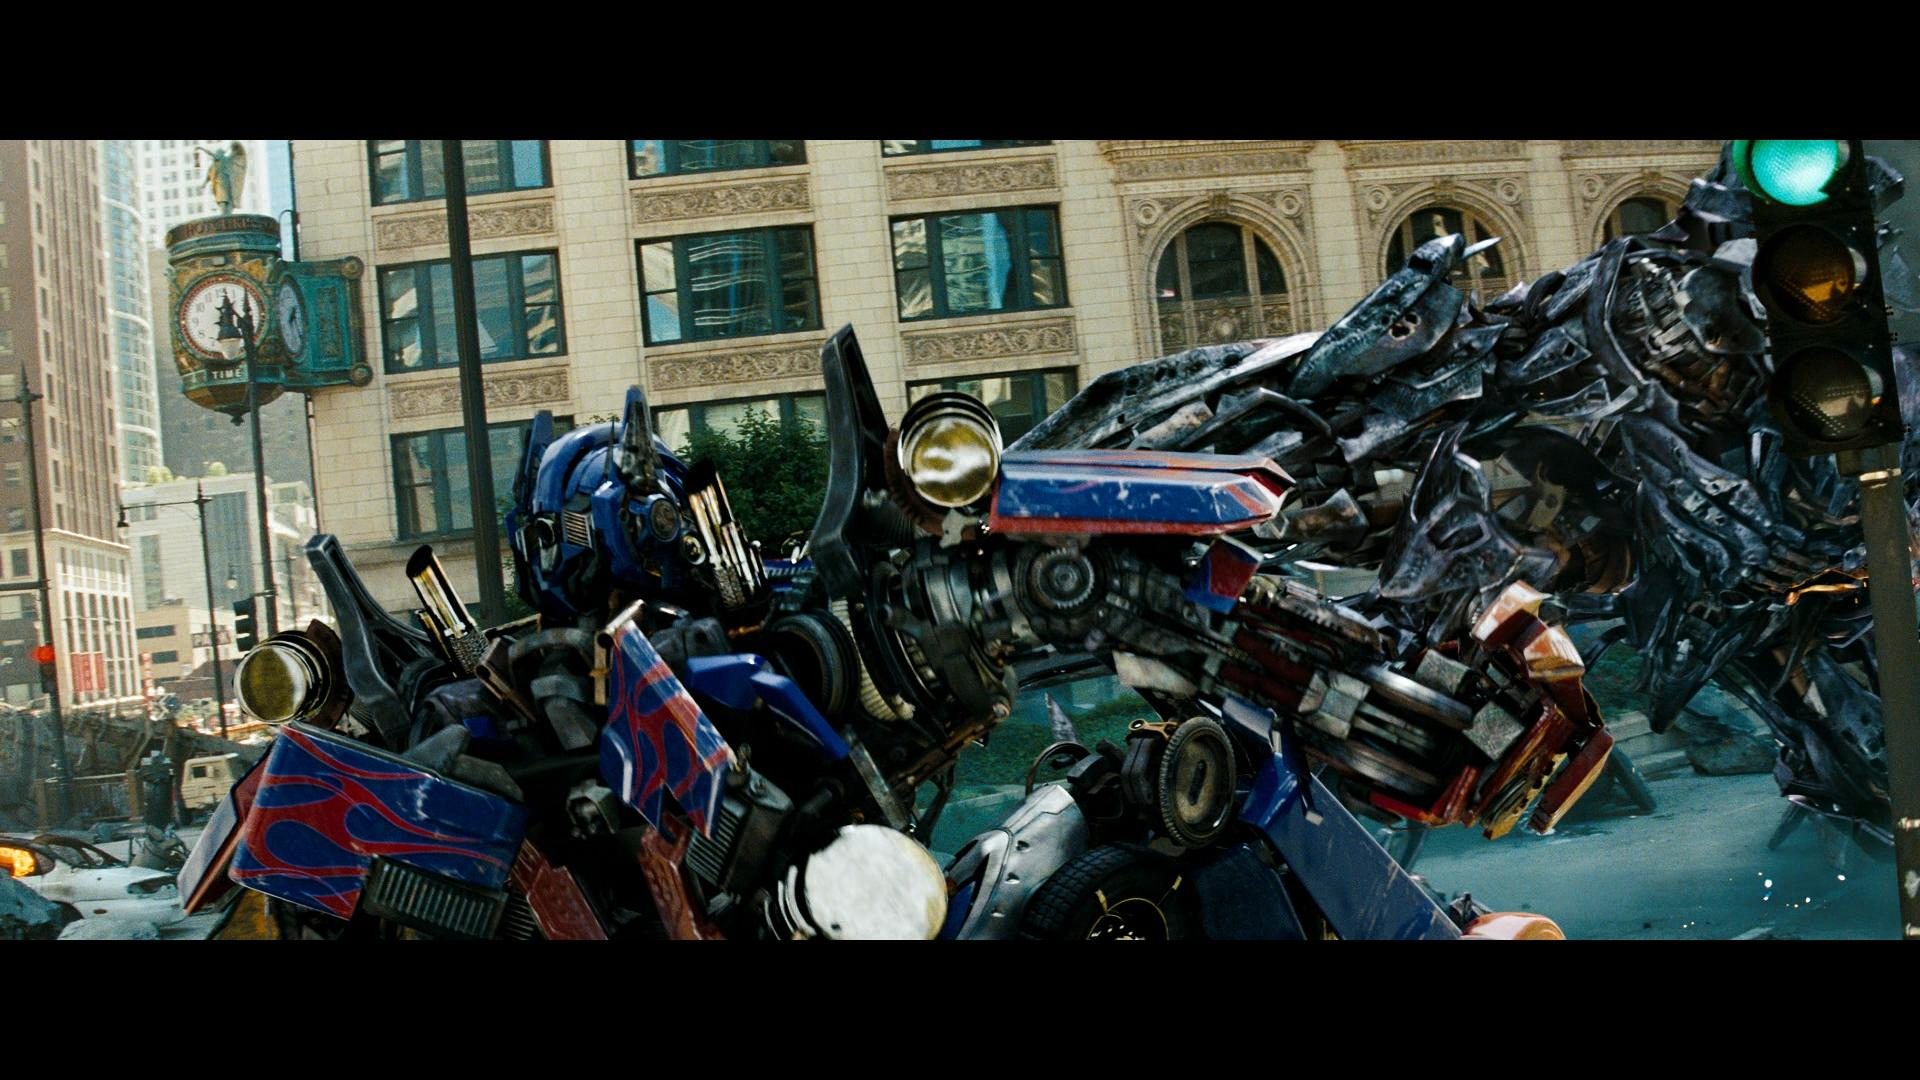 Transformers dark of the moon 2017 v2 720p2dvd nl subs dmt ...